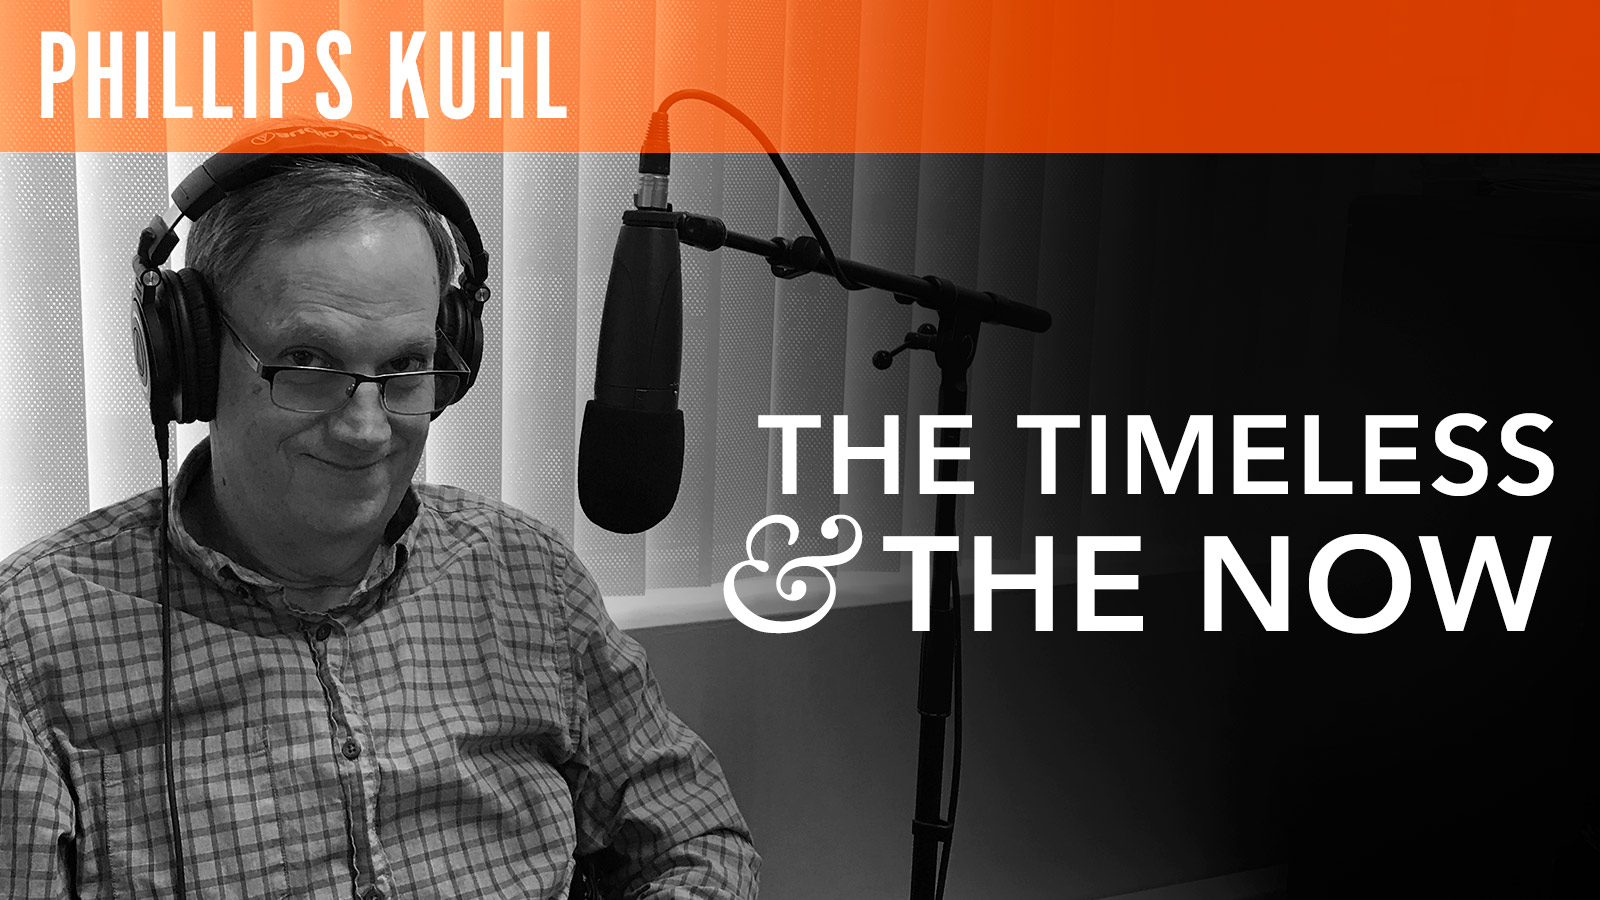 Phillips Kuhl  The Timeless & The Now